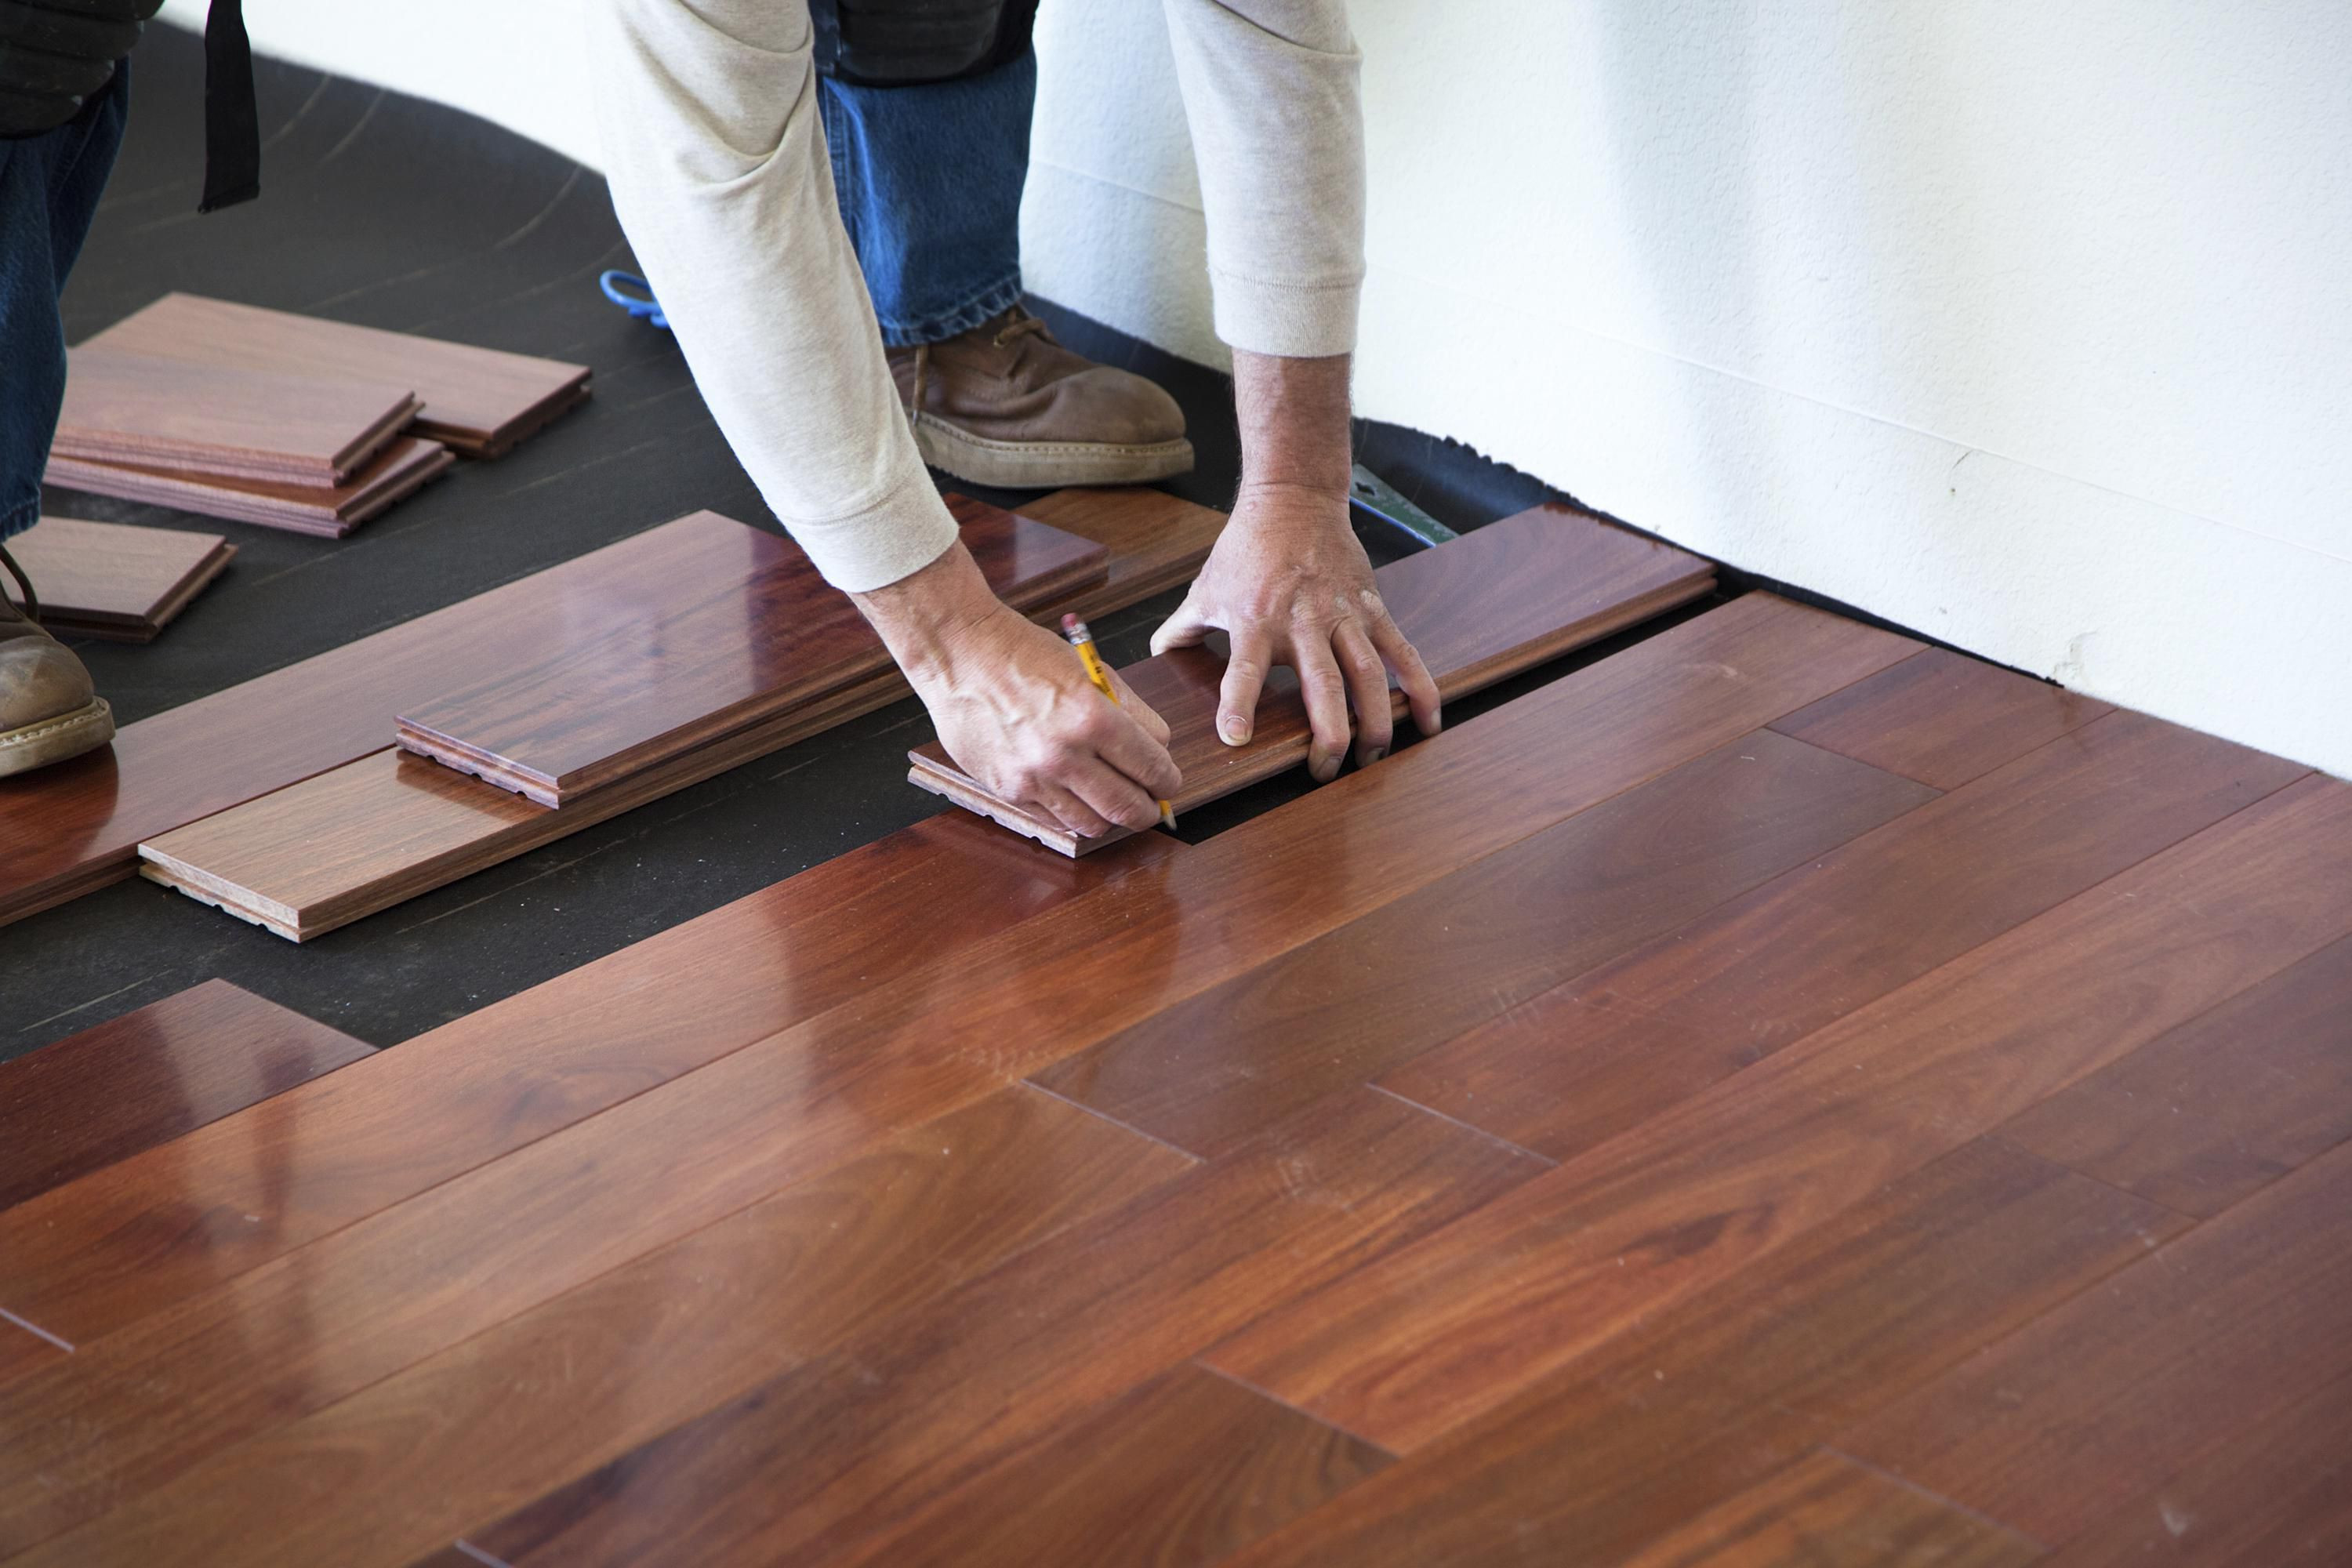 Sanding Hardwood Floors Yourself Of This is How Much Hardwood Flooring to order with Regard to 170040982 56a49f213df78cf772834e21